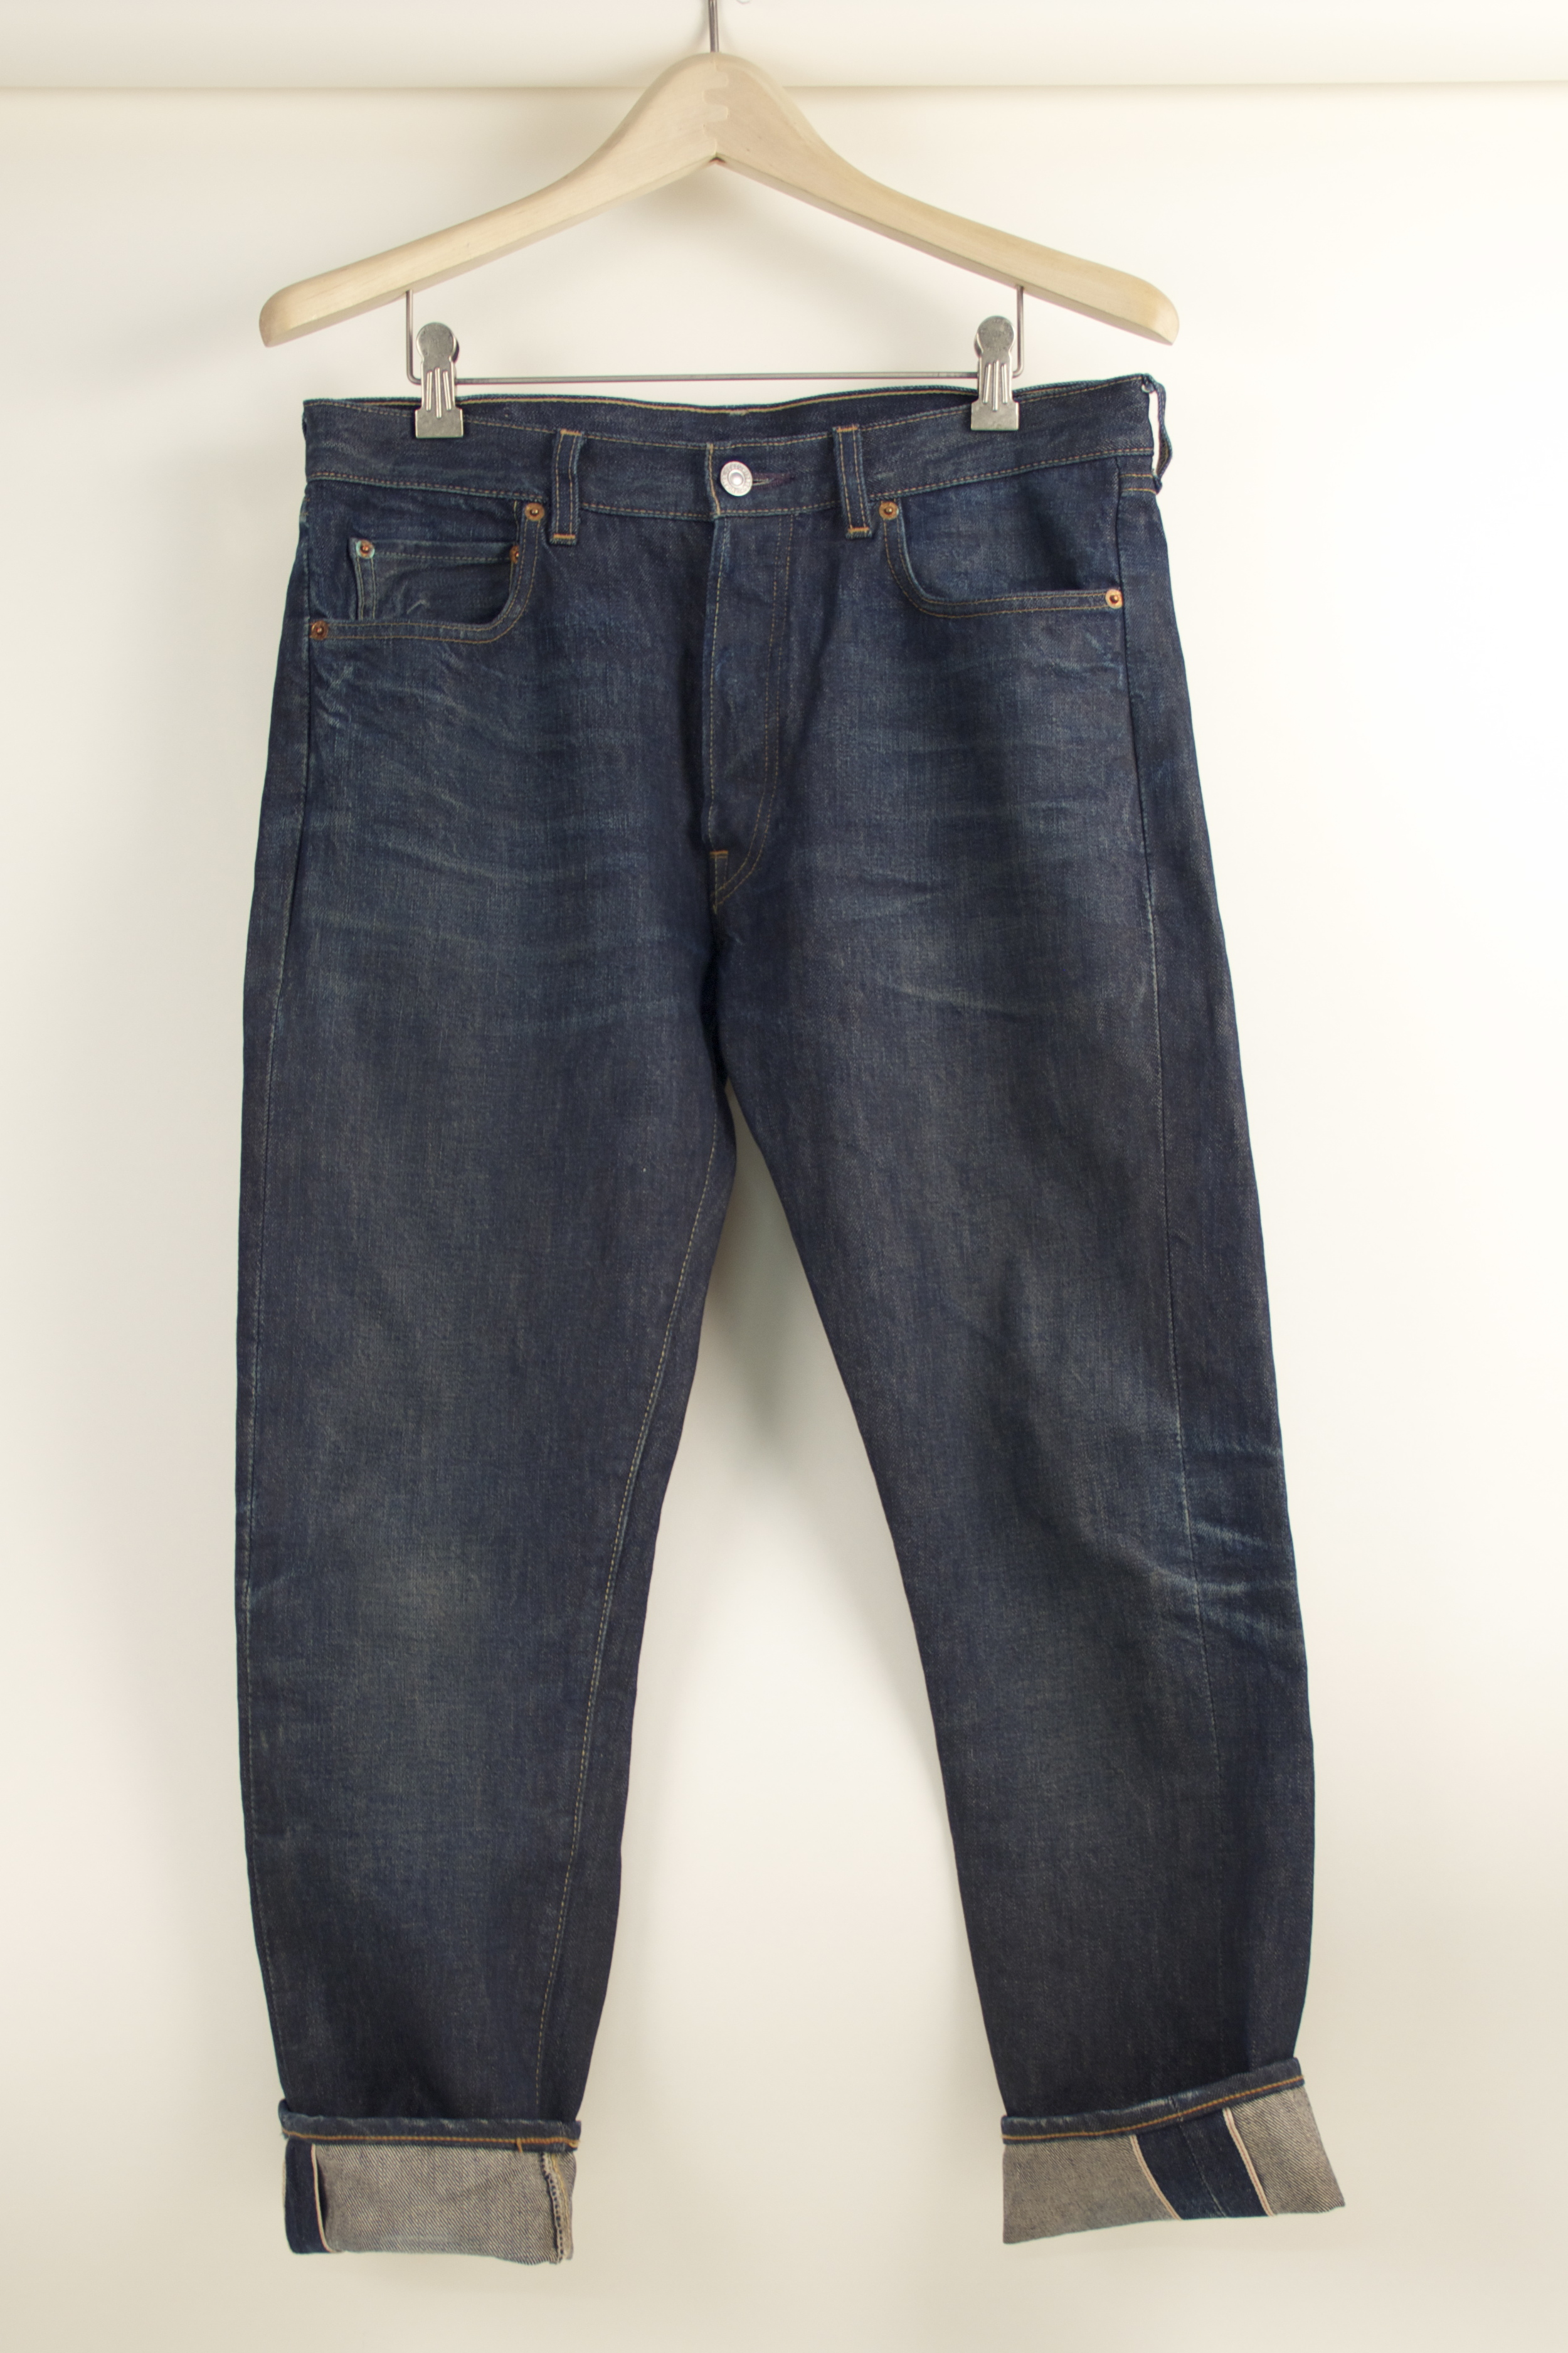 Howard Gee's pair of Levi's '66 501s, the inspiration for the AB Fits 25th Anniversary collaboration with Raleigh Denim.